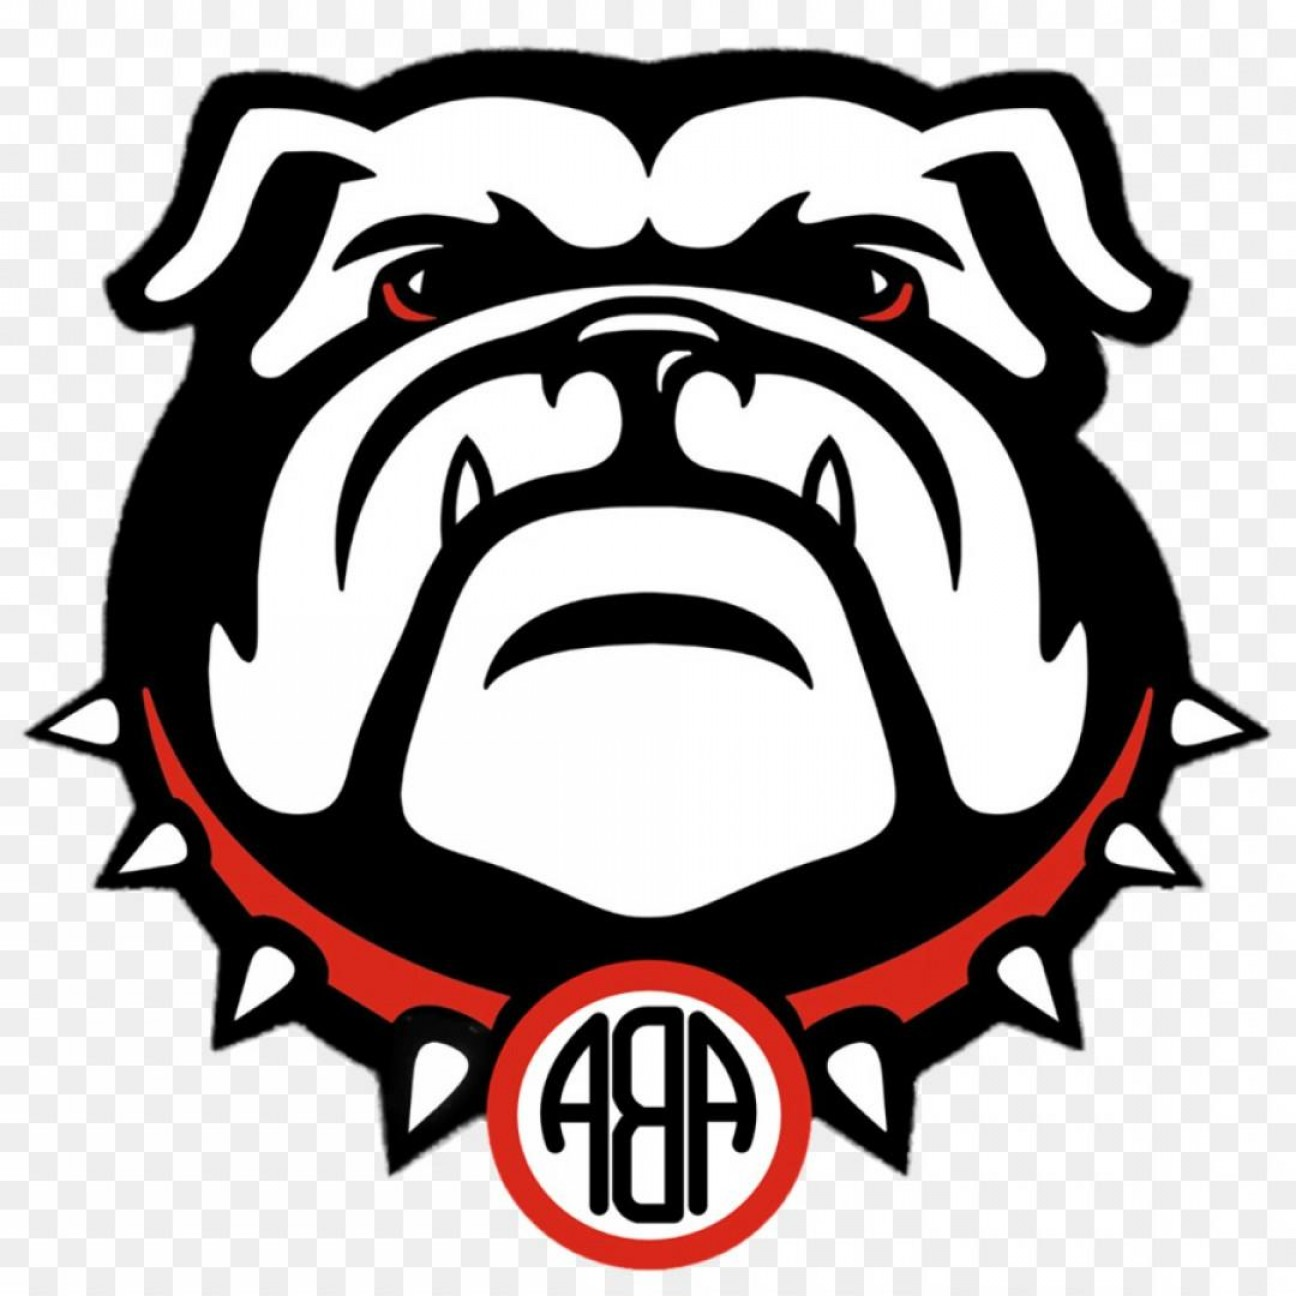 Bulldog Vector Art: Best Free Georgia Bulldogs Football Logo Vector Cdr